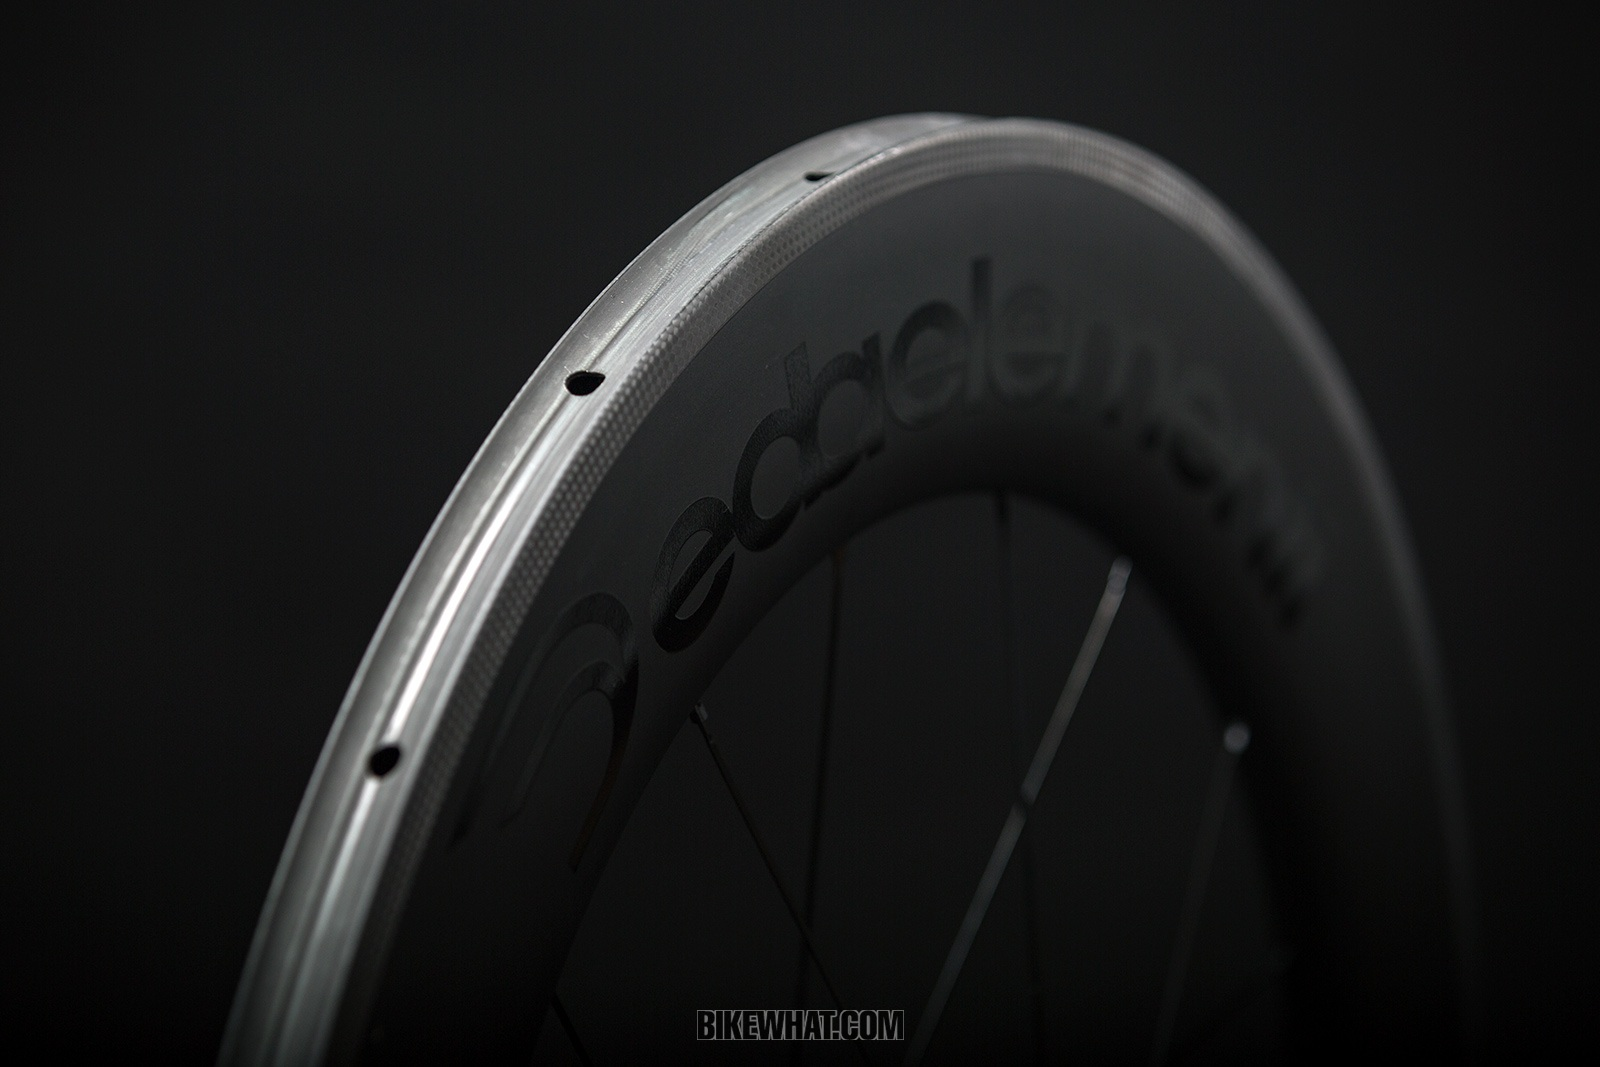 Preview_Dedaelementi_Wheel_SL88_3.jpg